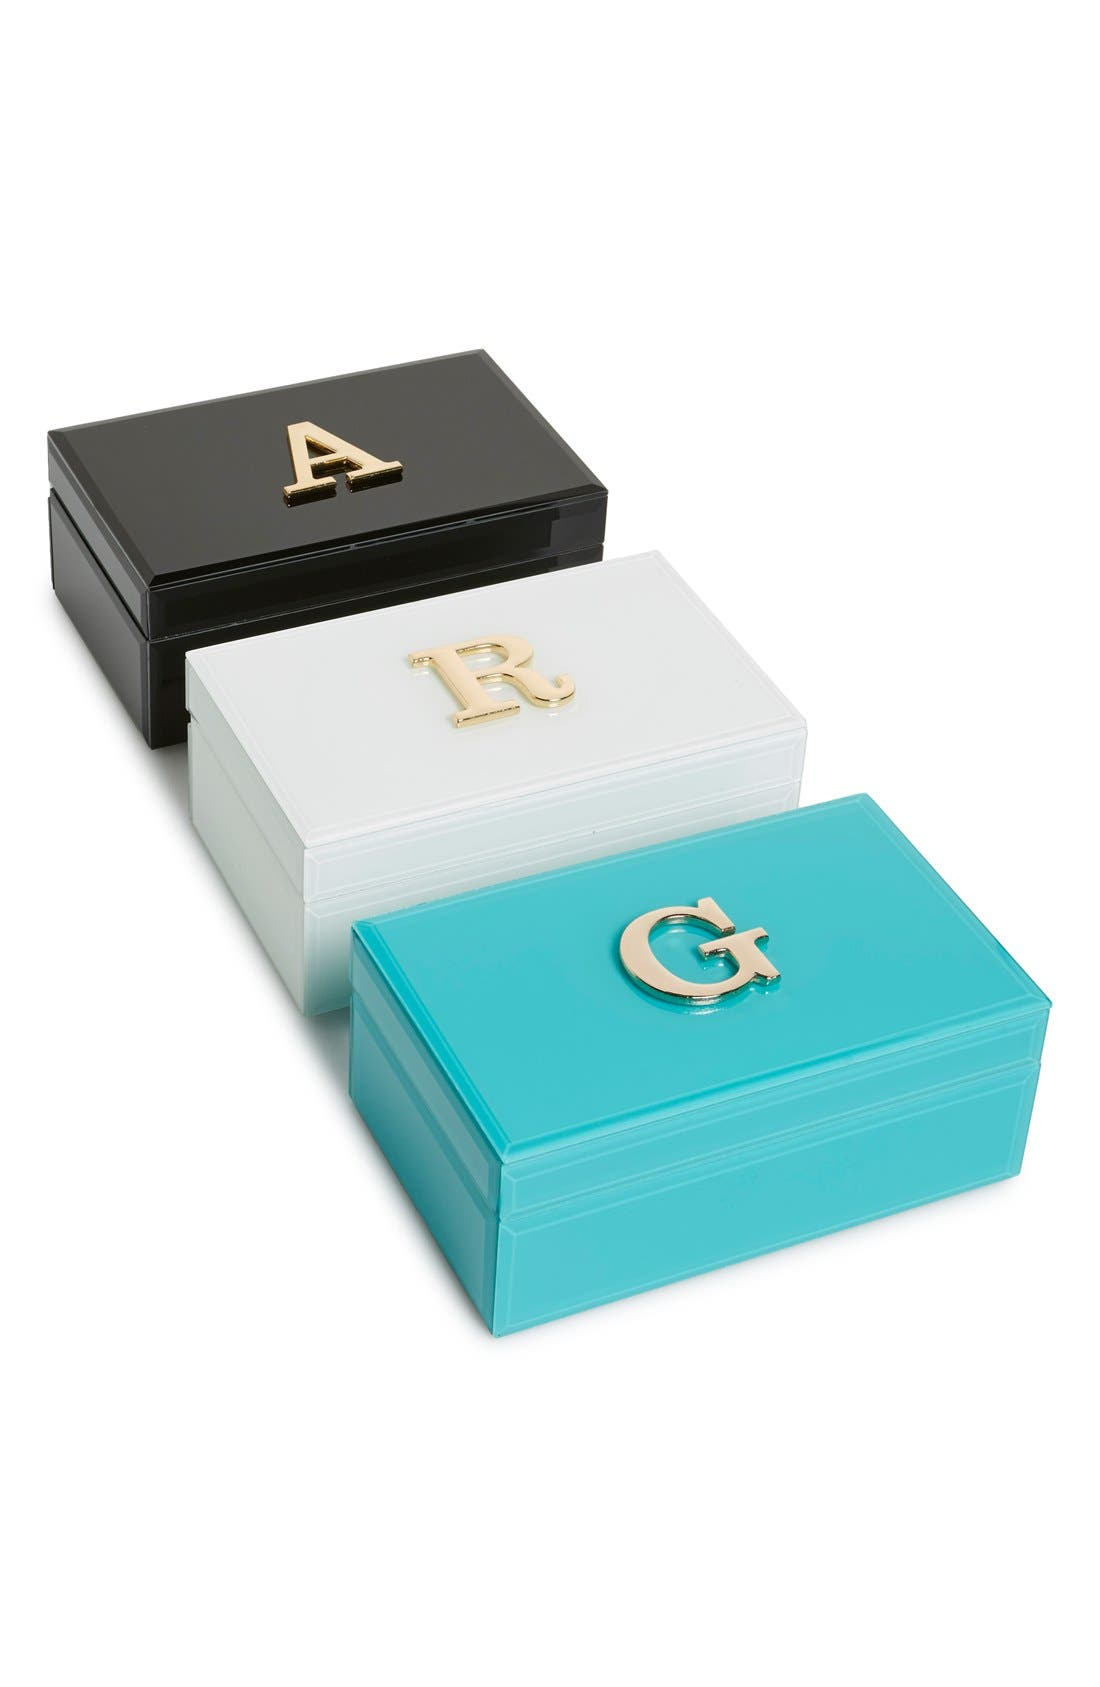 Monogram Jewelry Box,                             Alternate thumbnail 2, color,                             001